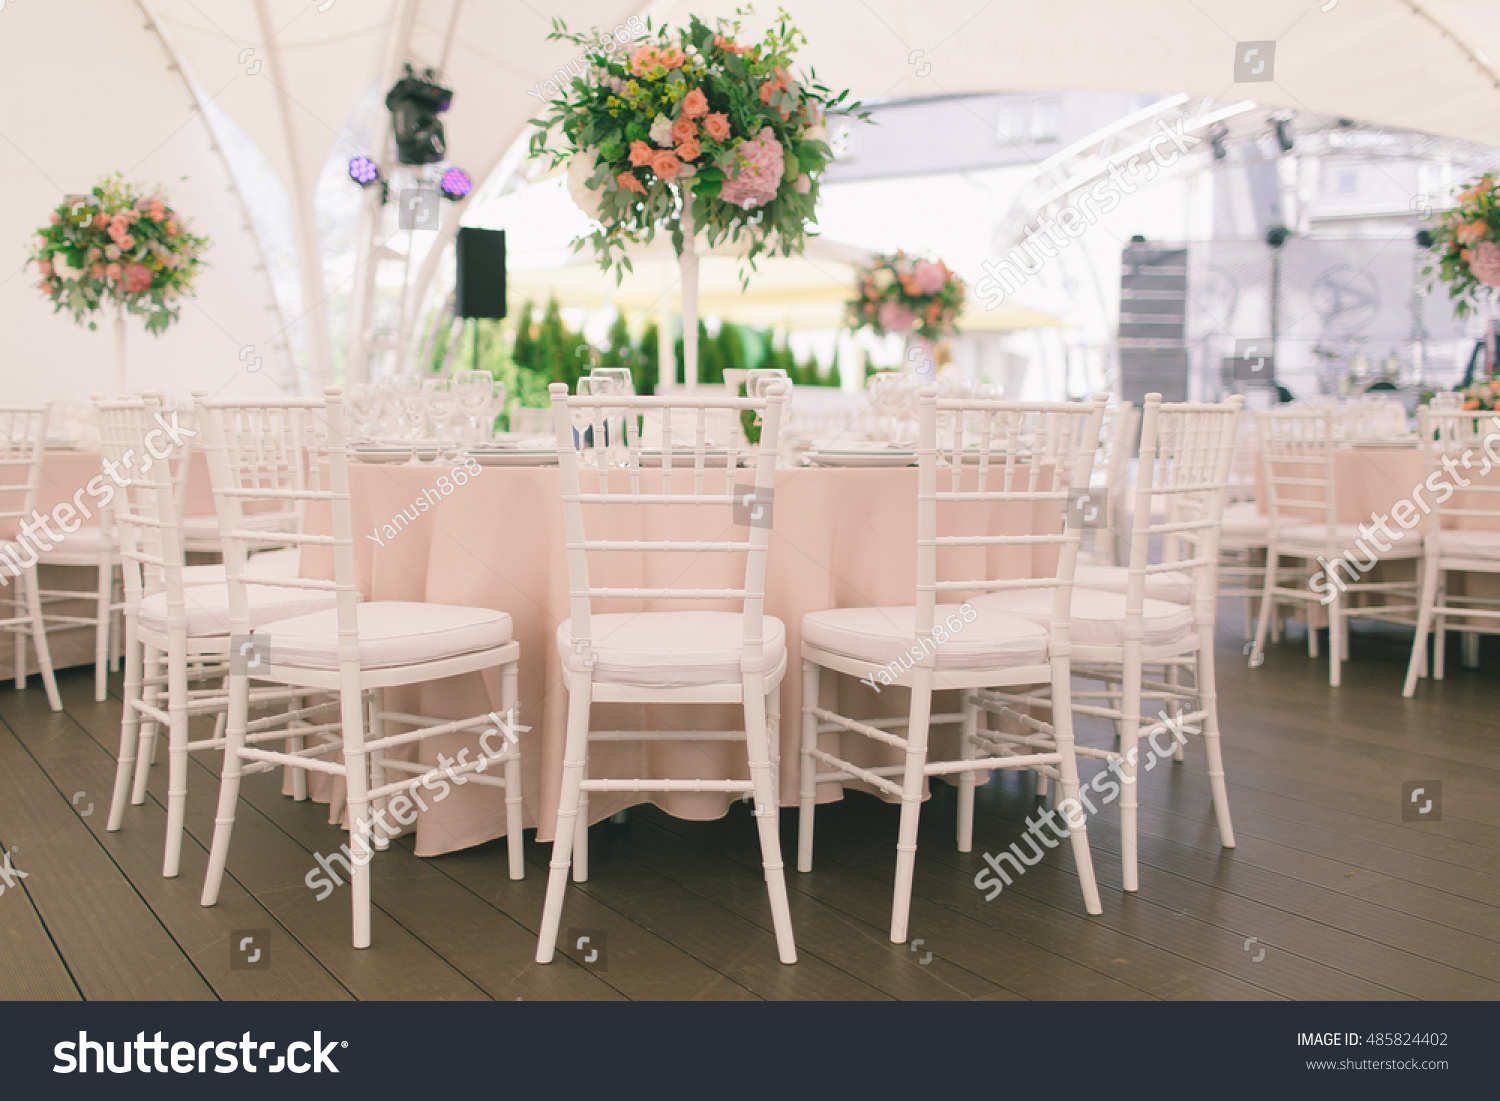 Original Wedding Decor Ideas Wedding Round Stock Photo Edit Now 485824402